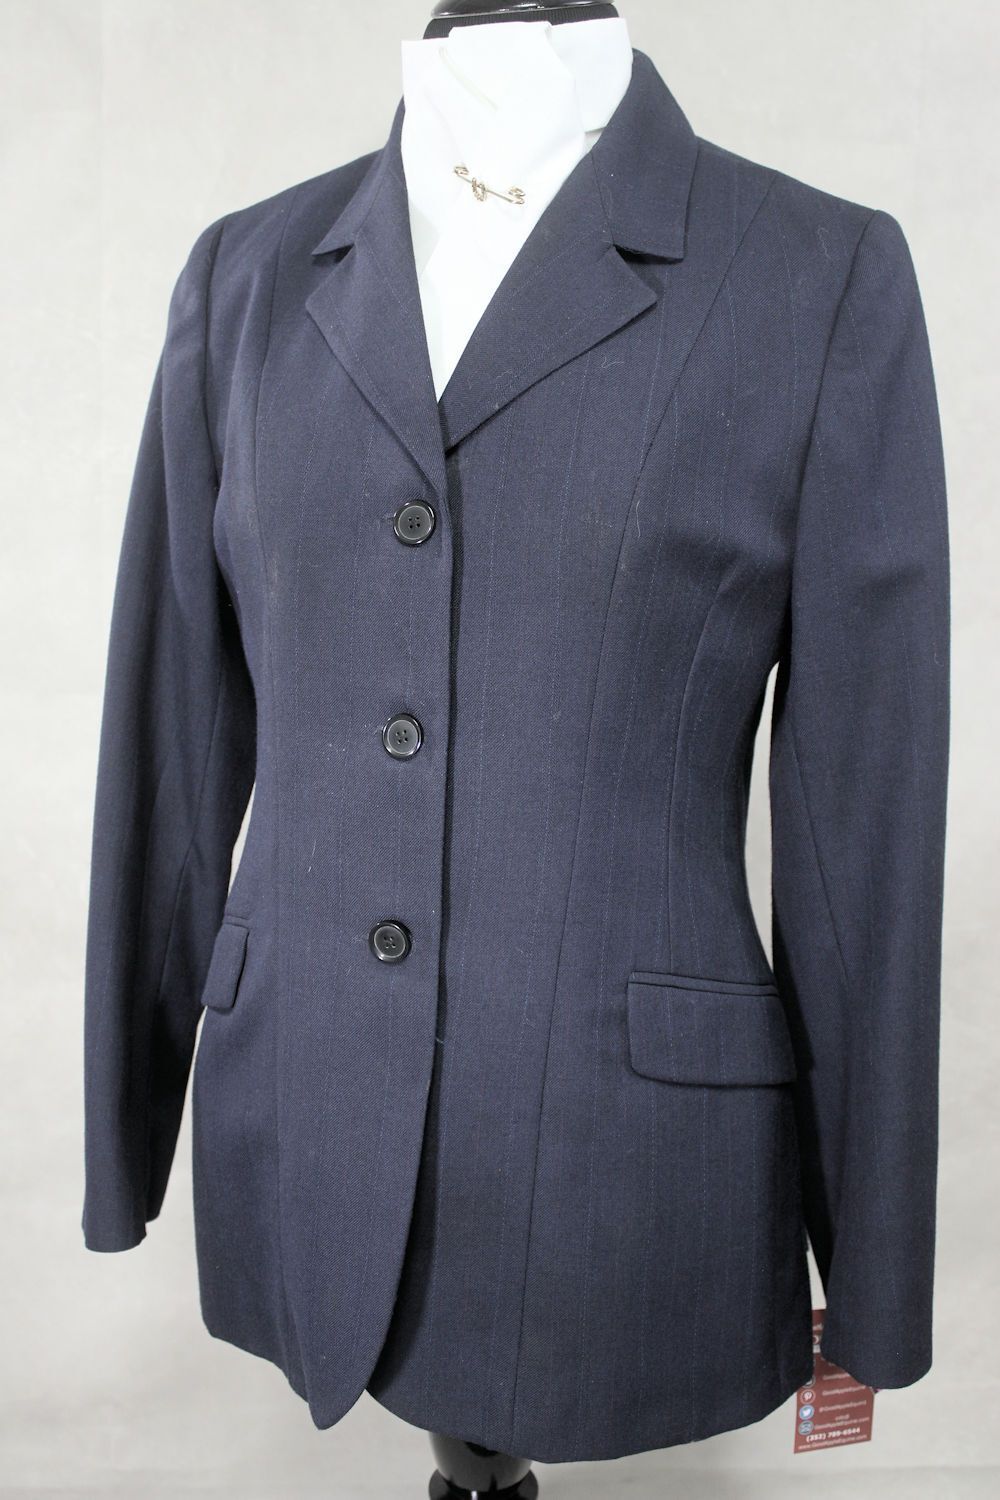 Beaufort Light Weight Show Coat, Navy, US Size 34ins Chest Ref  255-16